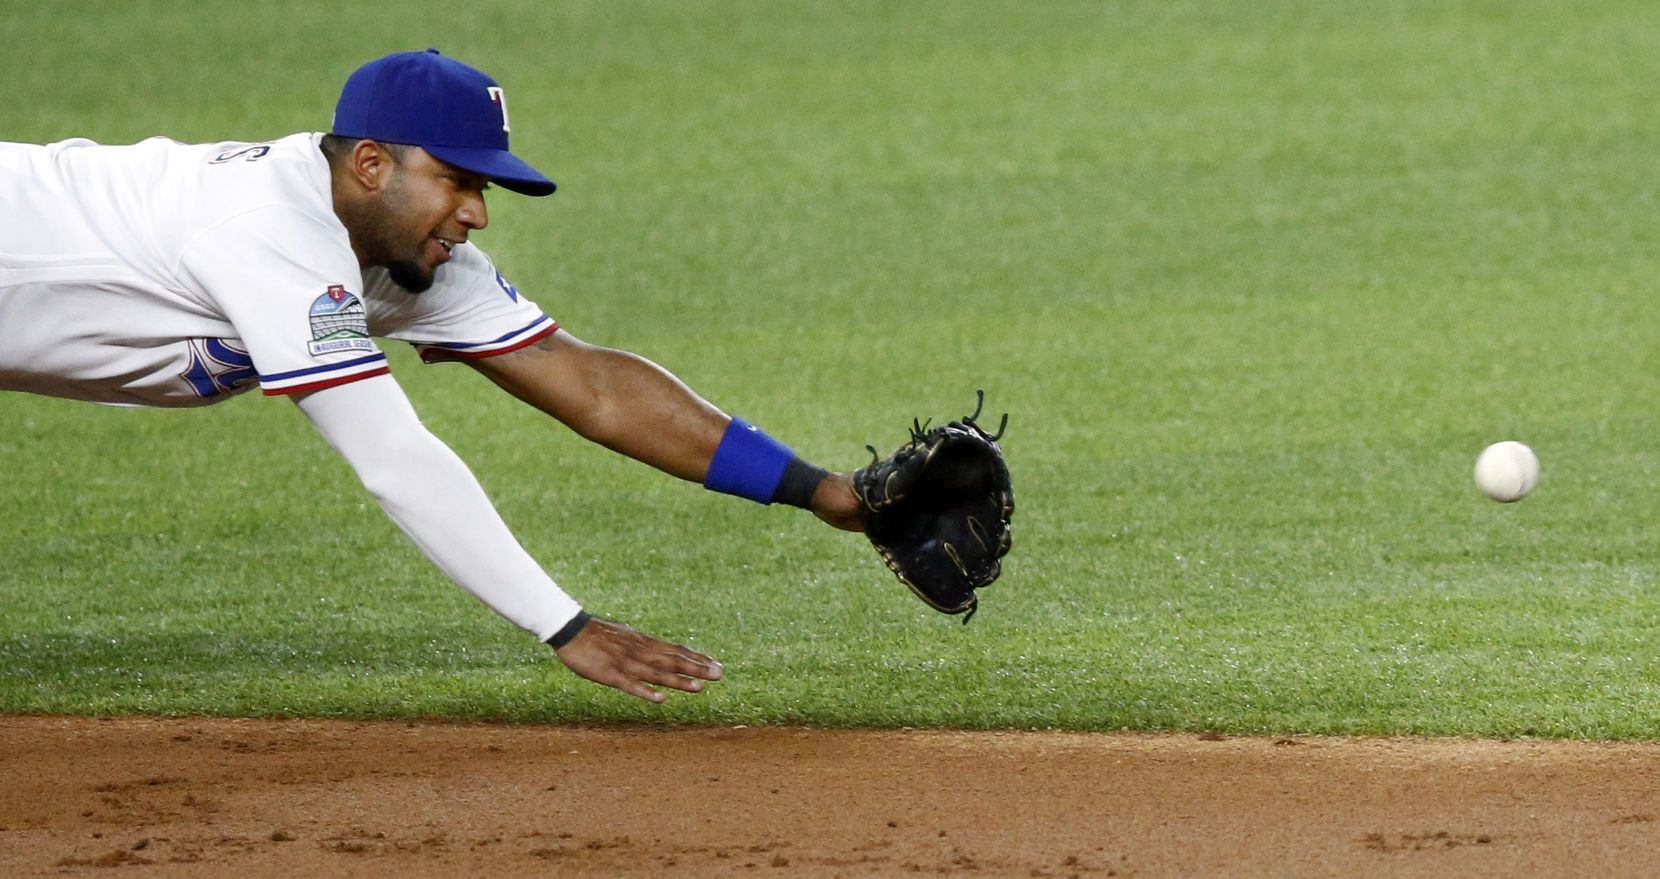 Texas Rangers shortstop Elvis Andrus (1) dives for a line drive hit by Los Angeles Angels Anthony Rendon (6) during first the inning at Globe Life Field in Arlington, Texas, Tuesday, September 8, 2020. (Tom Fox/The Dallas Morning News)